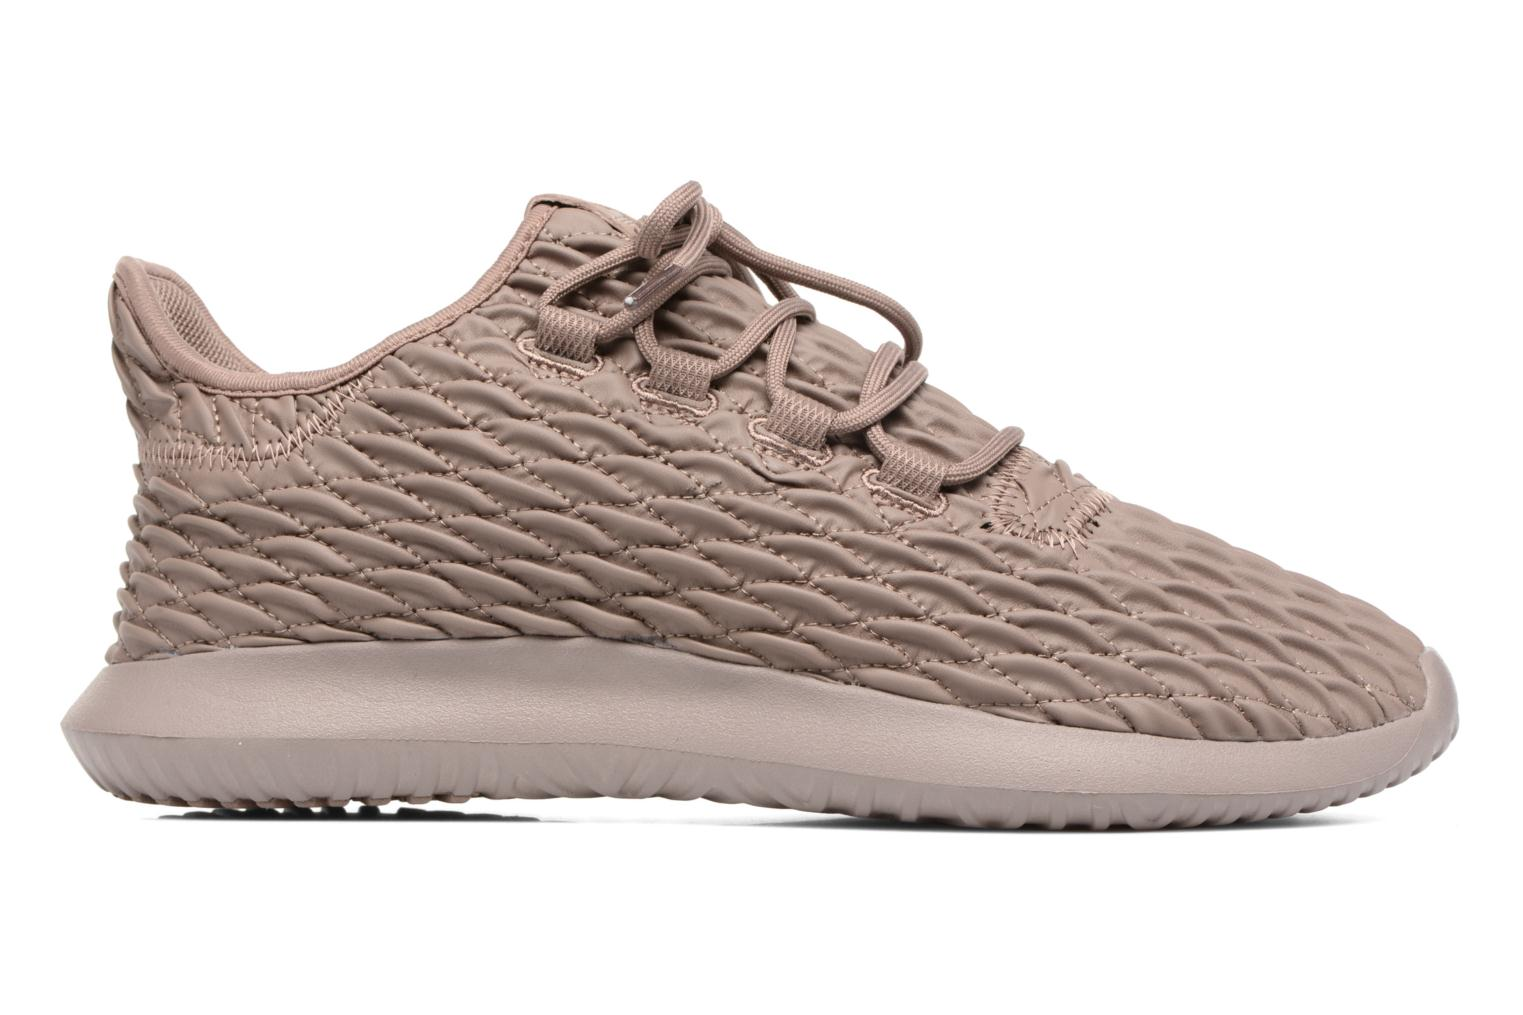 Baskets Adidas Originals Tubular Shadow Marron vue derrière